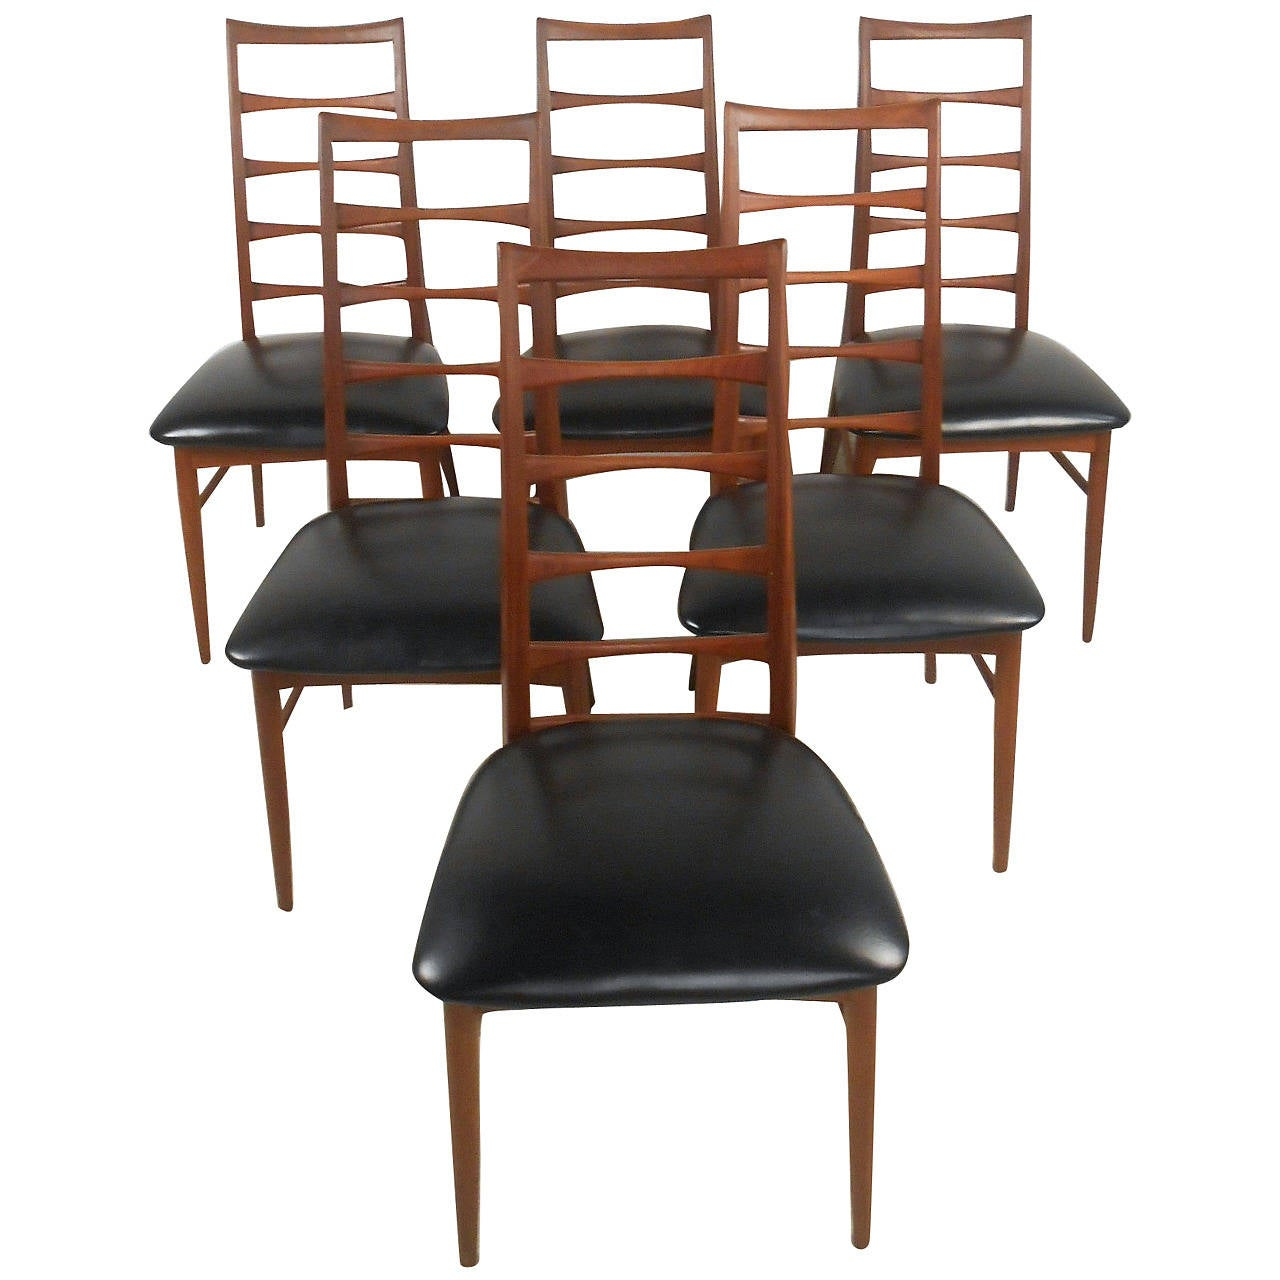 Set of niels koefoed ladder back dining chairs for raymor for sale at 1stdibs - Ladder back dining room chairs ...